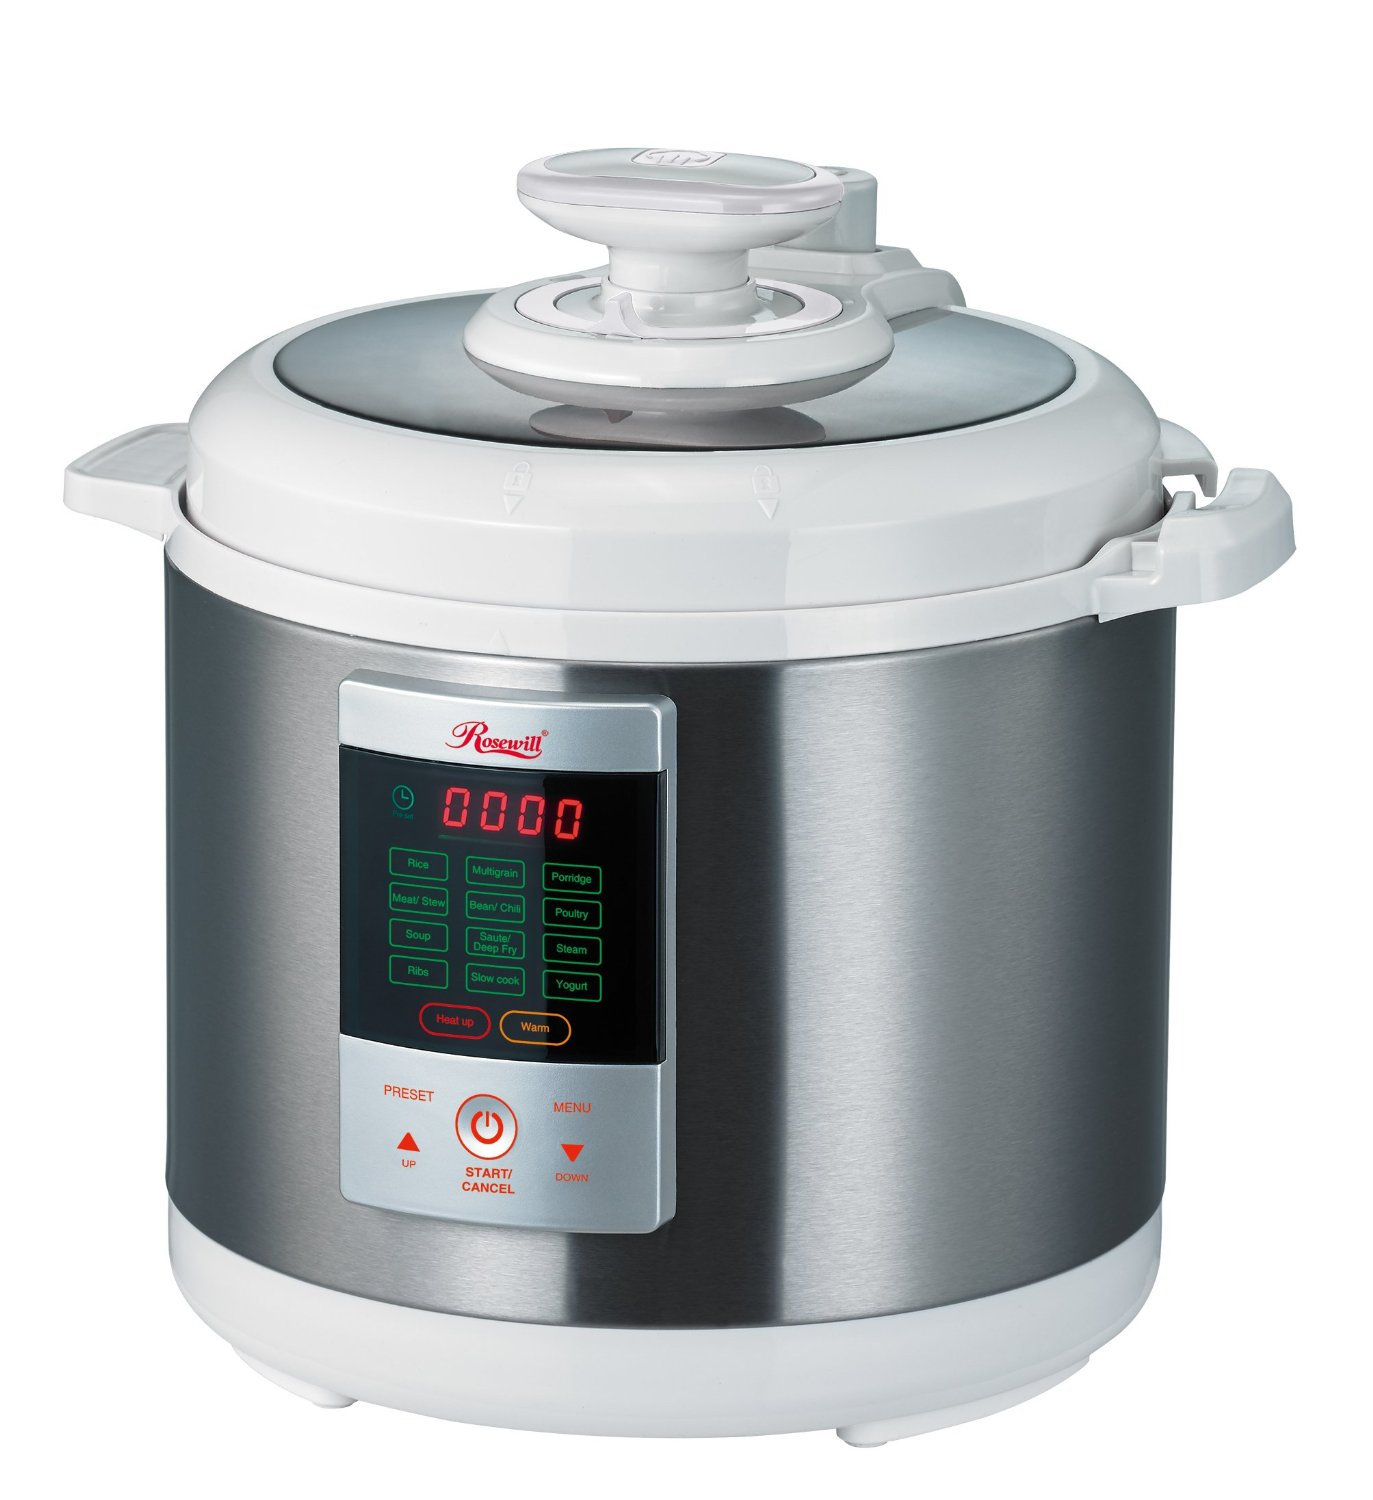 Rosewill RHPC-15001 7-in-1 Multi-Function Pressure Cooker